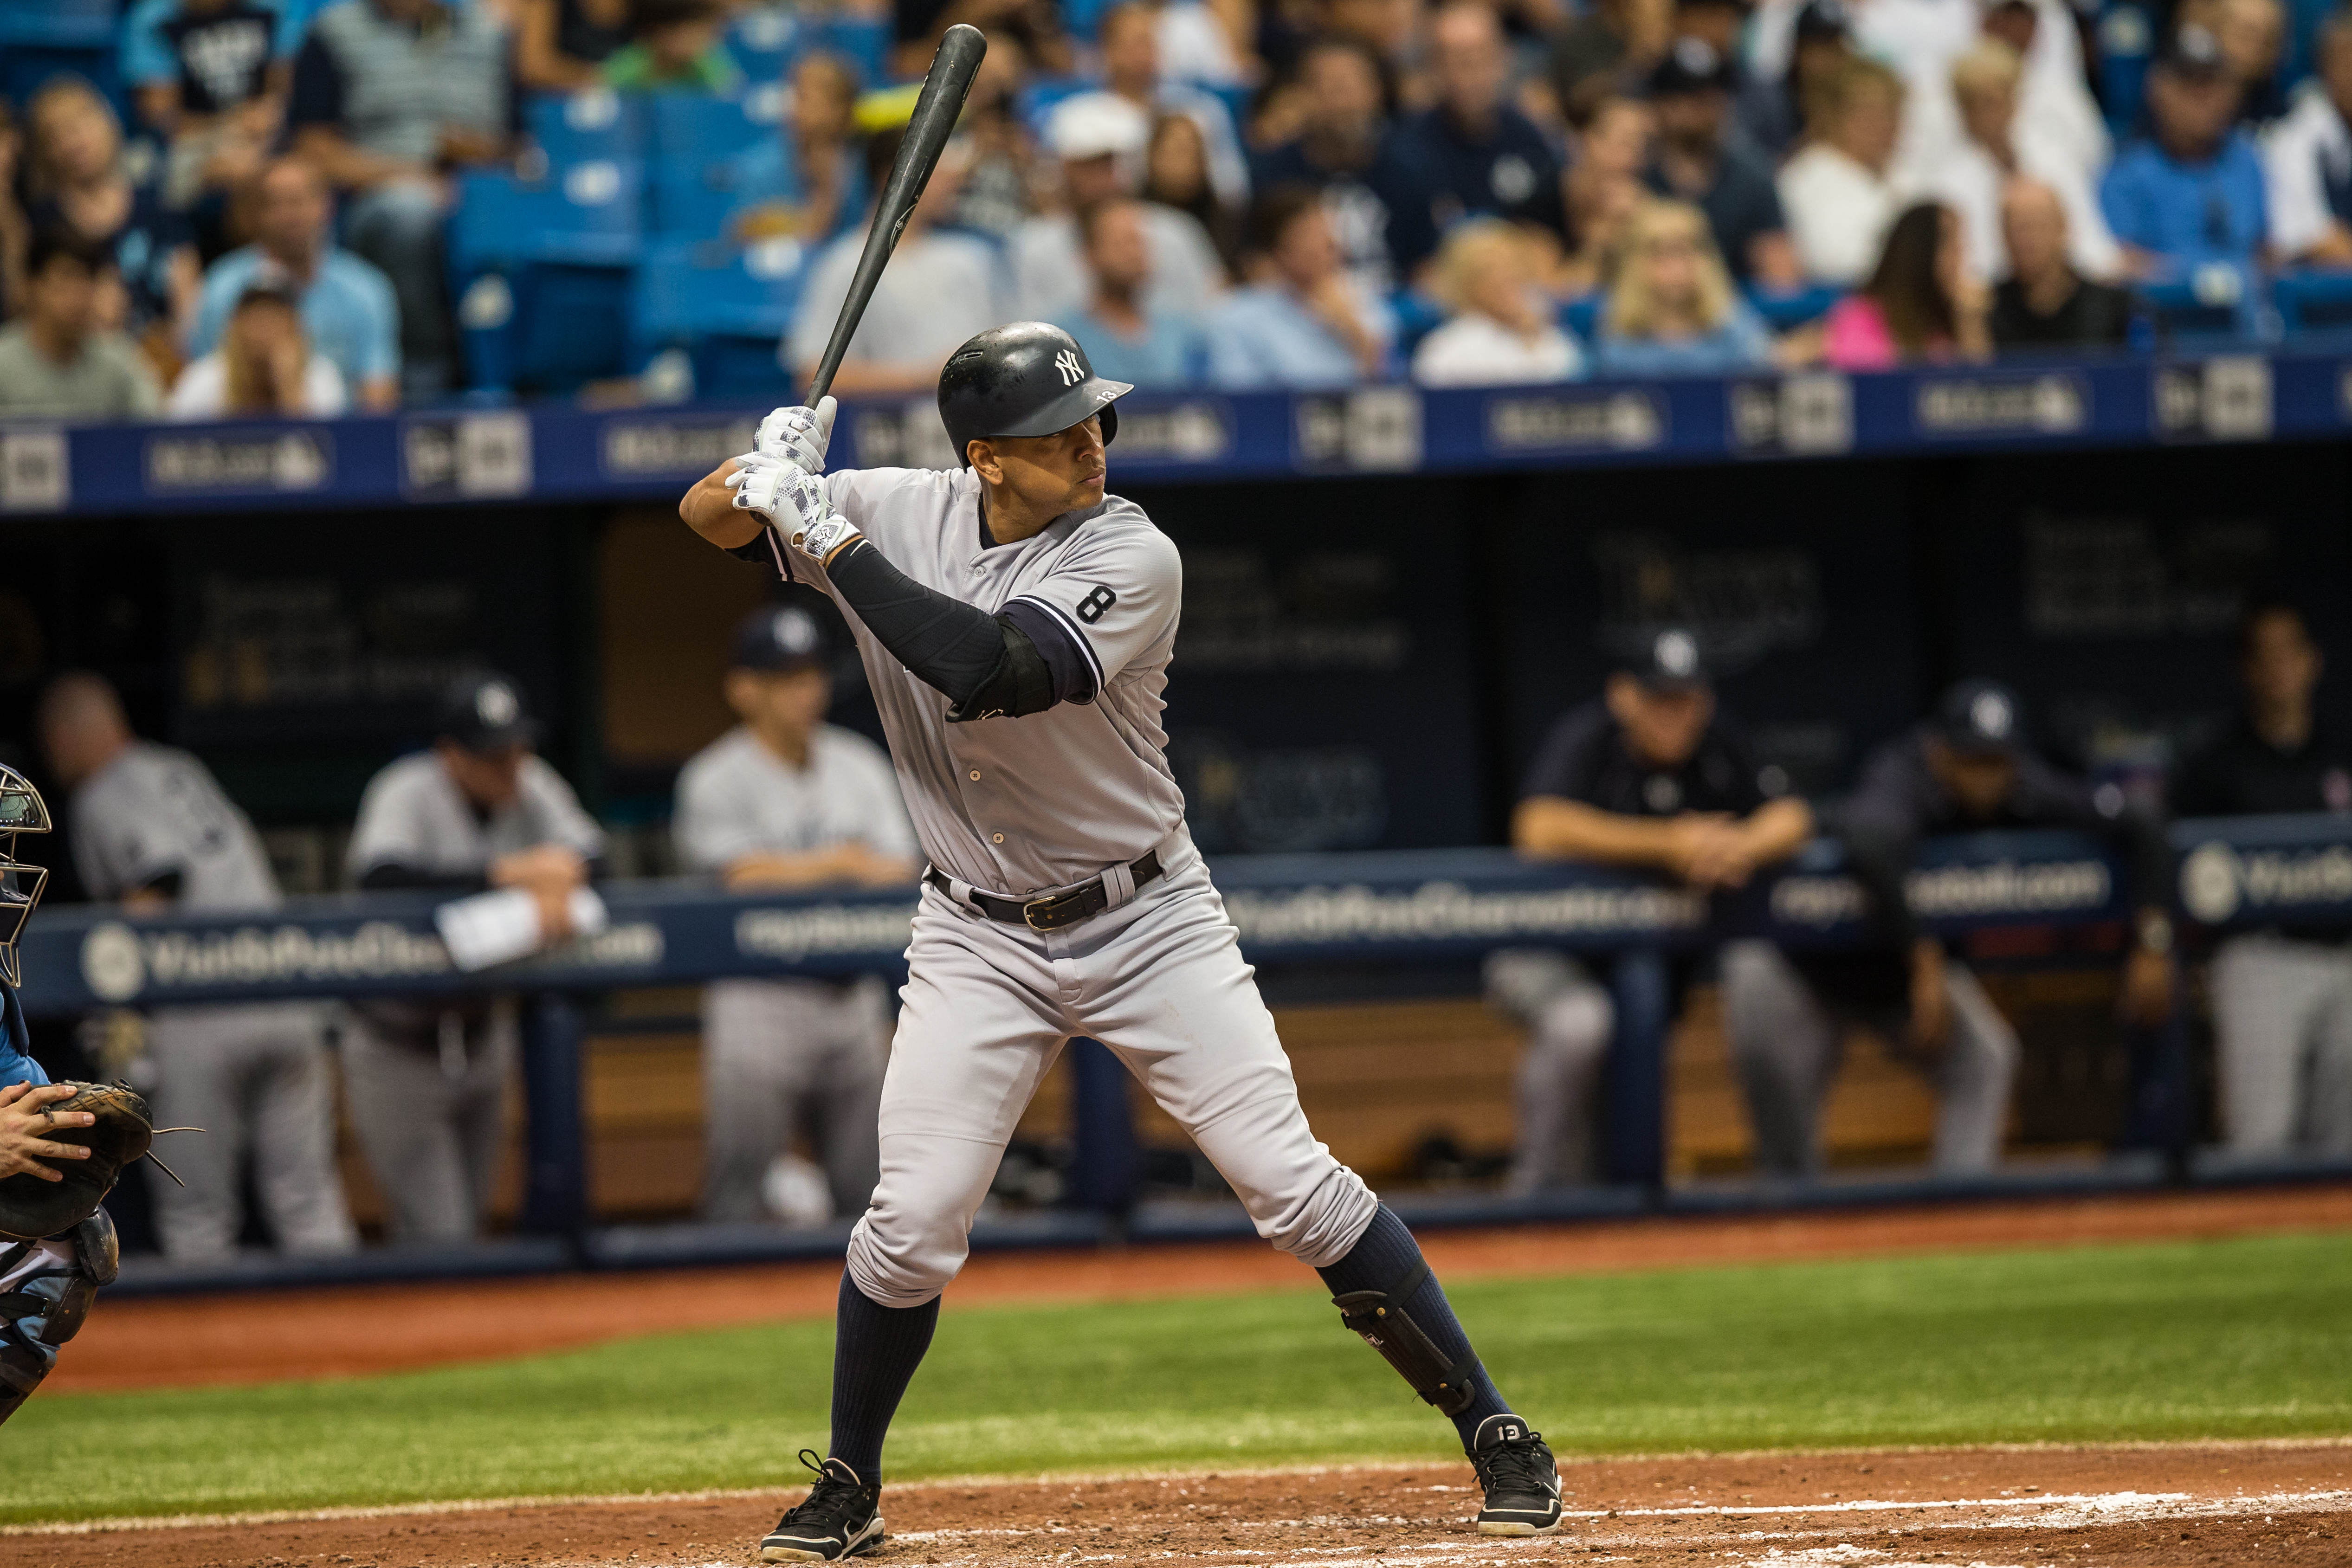 How much would A-Rod have been loved if he would have allowed it?TRAVIS PENDERGRASS